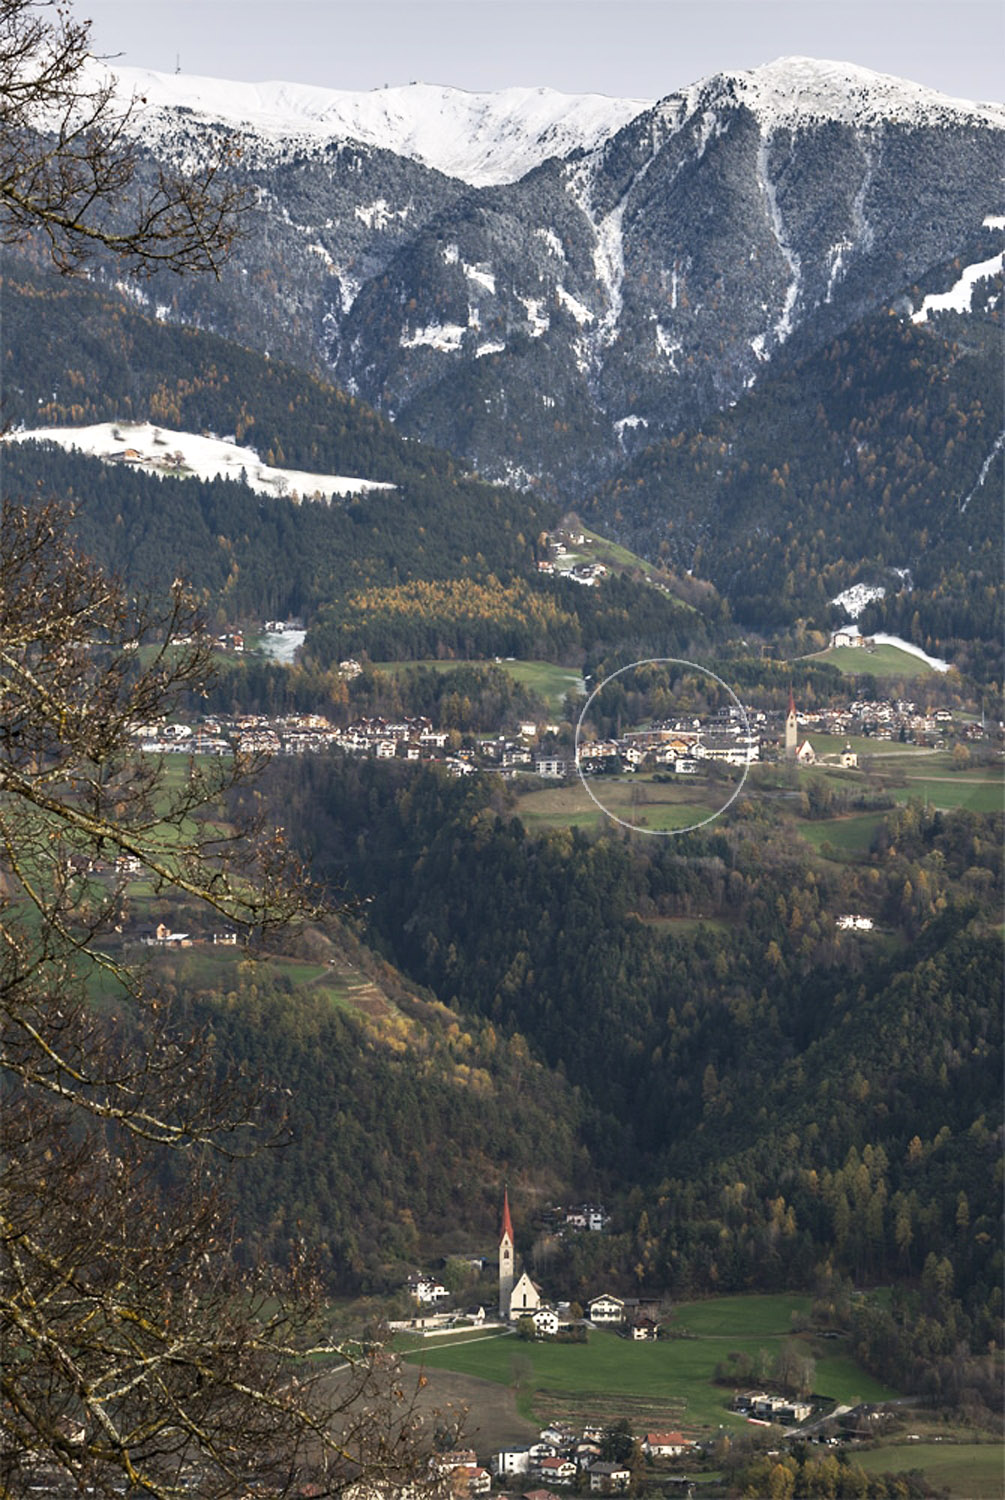 View towards the town of S. Andrea from across the Isarco Valley Oliver Jaist